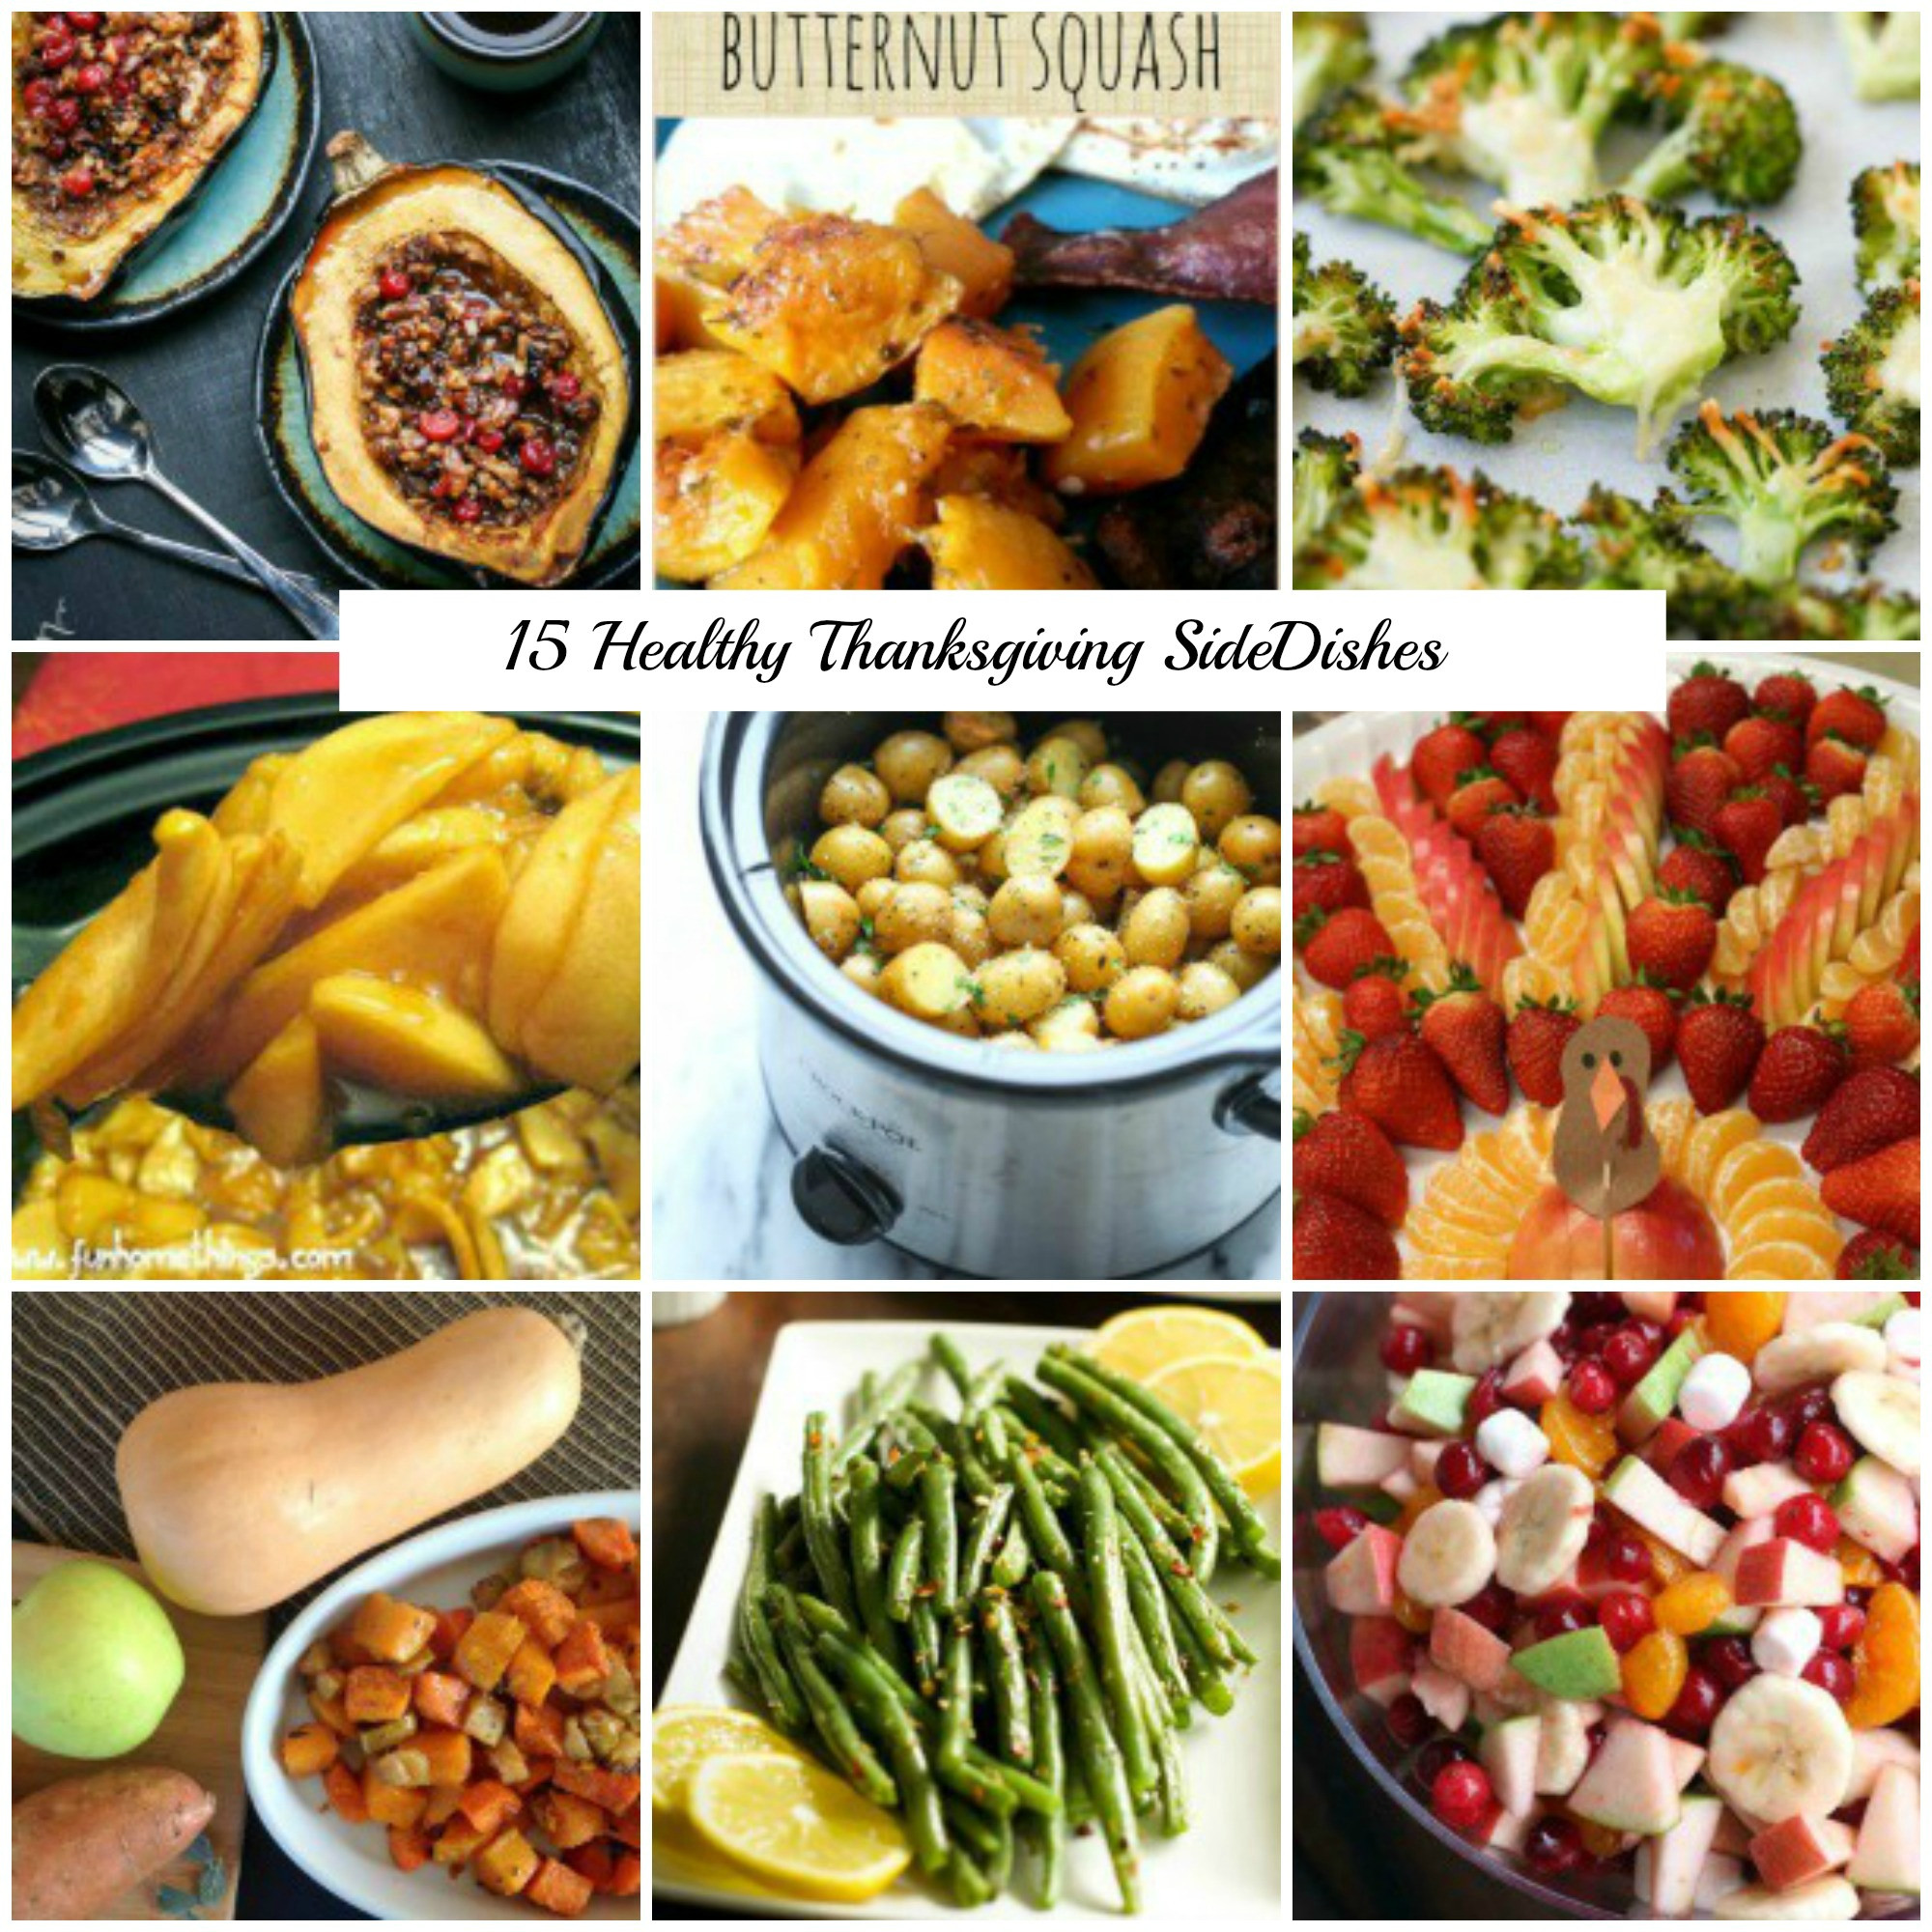 Healthy Thanksgiving Side Dish Recipes  15 Healthy Thanksgiving Side Dish Recipes That are Still